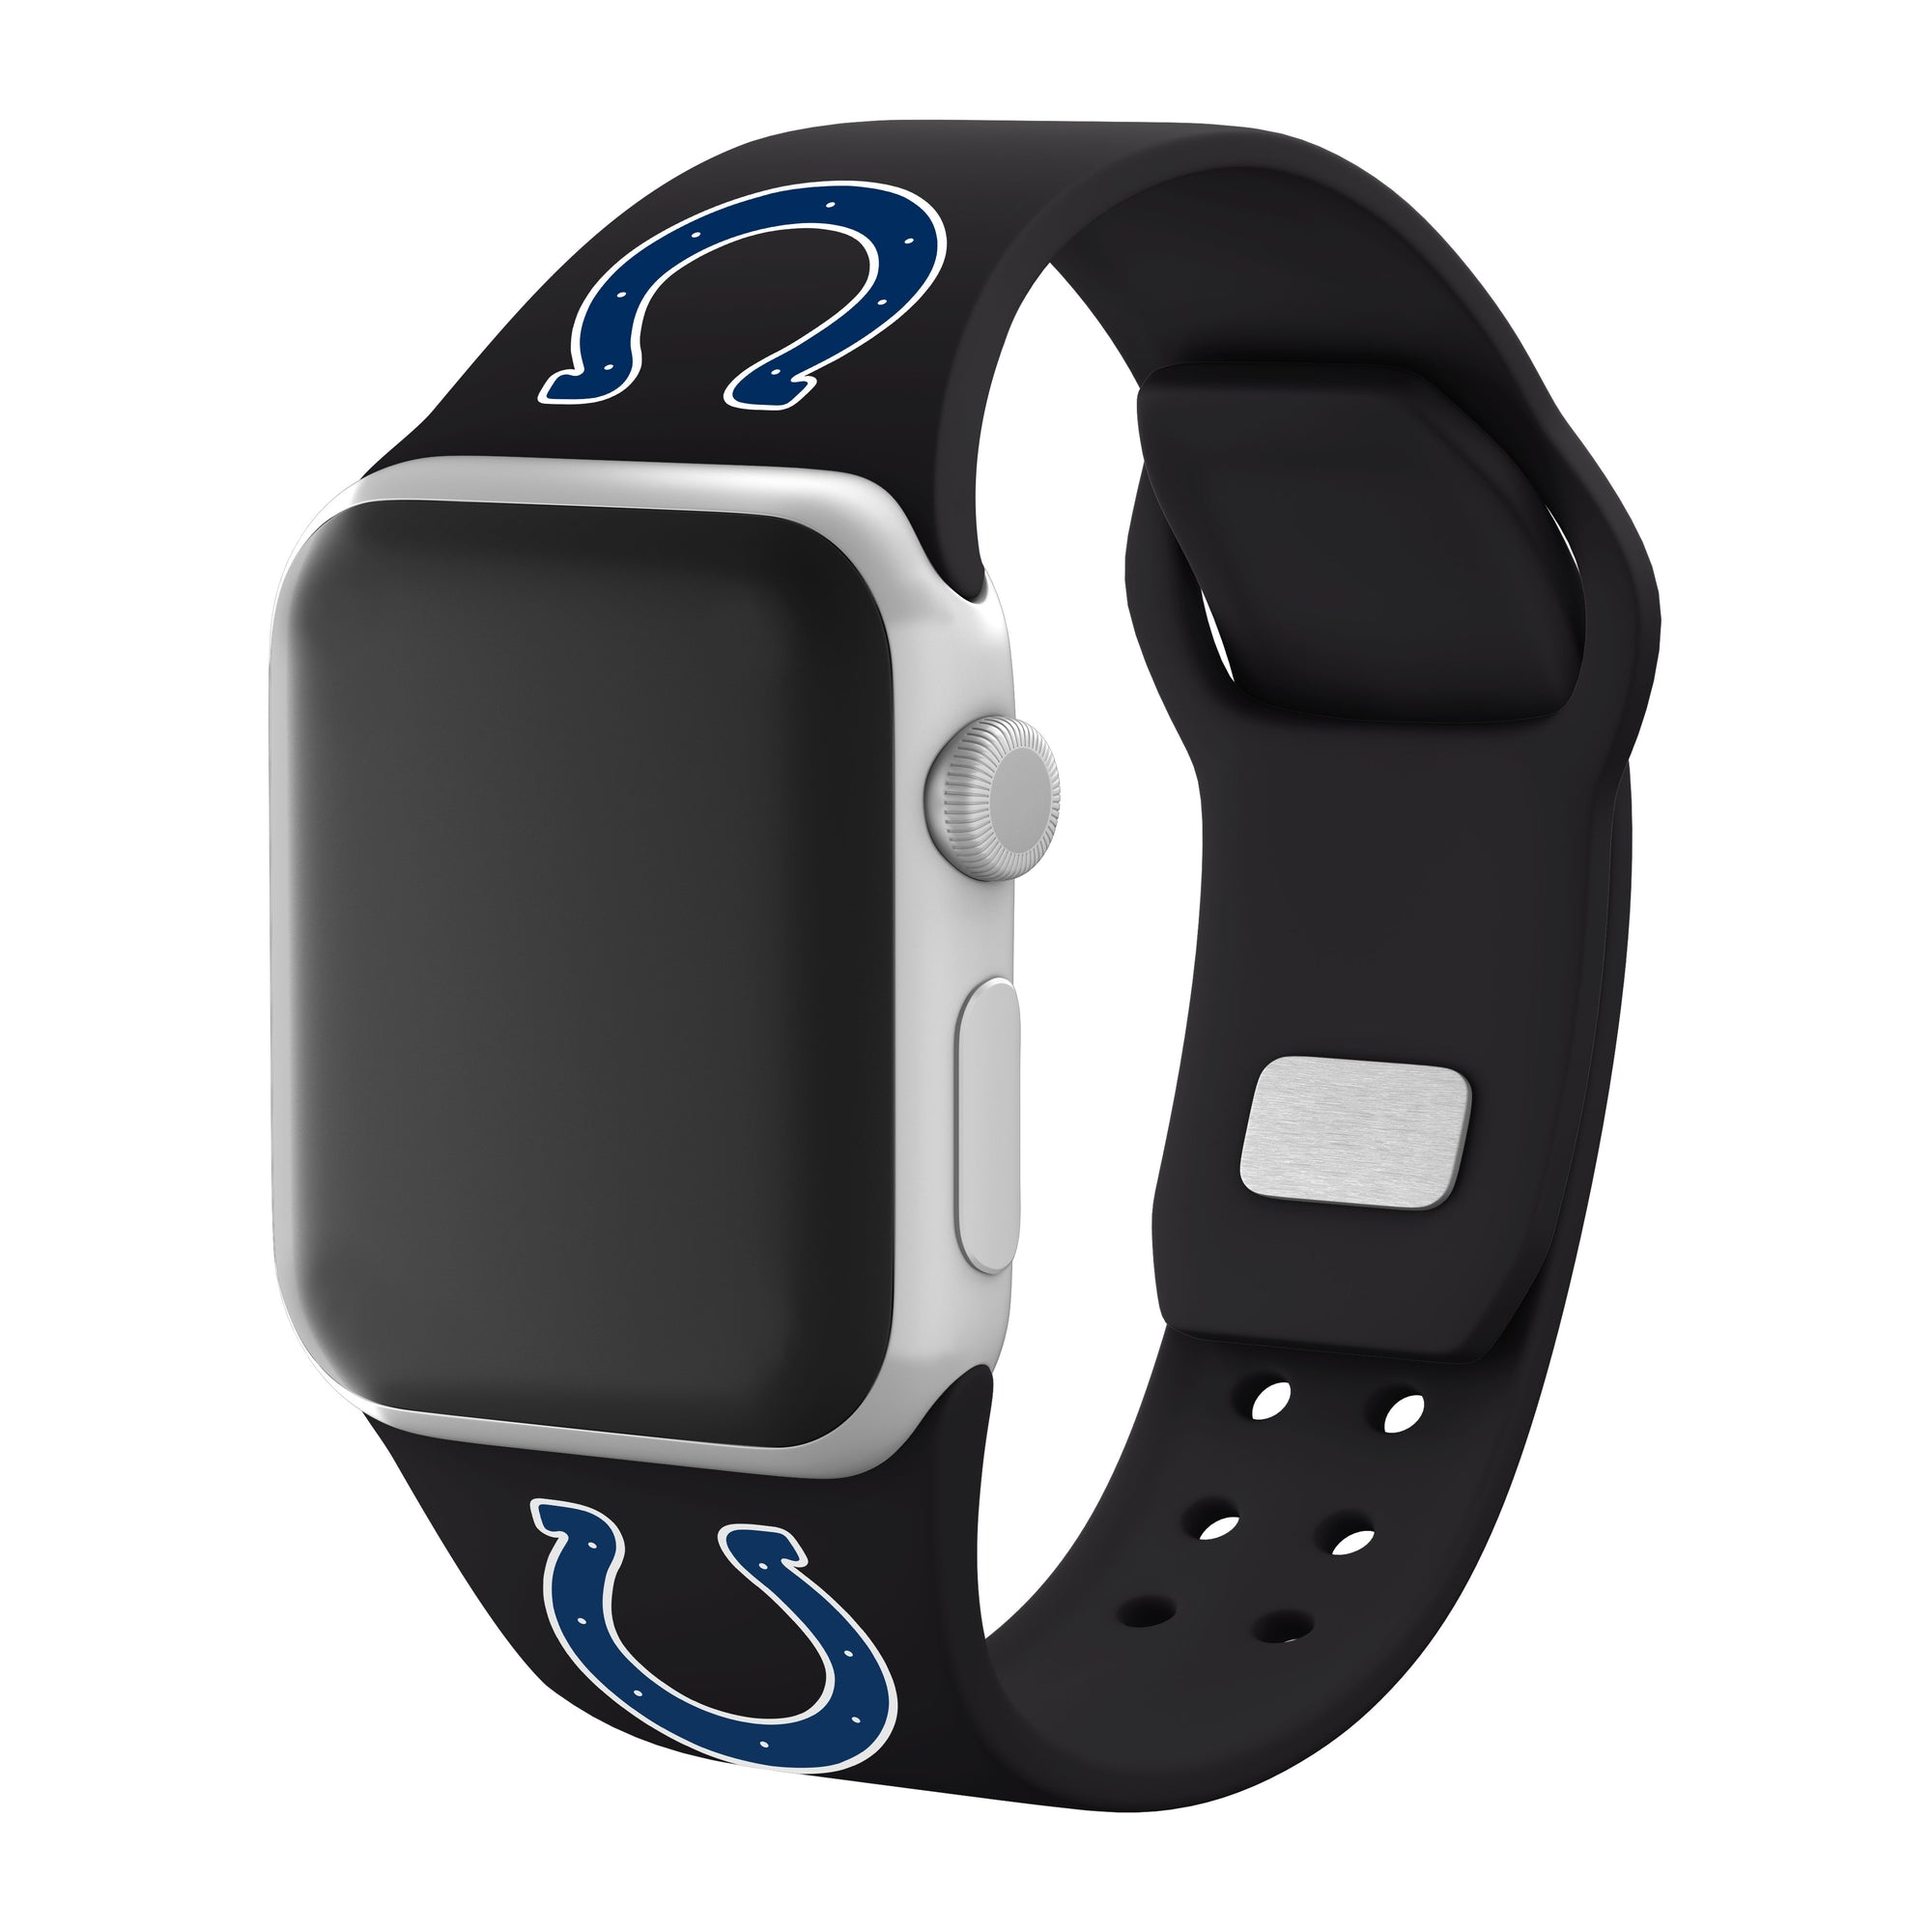 Indianapolis Colts Silicone Apple Watch Band - Affinity Bands